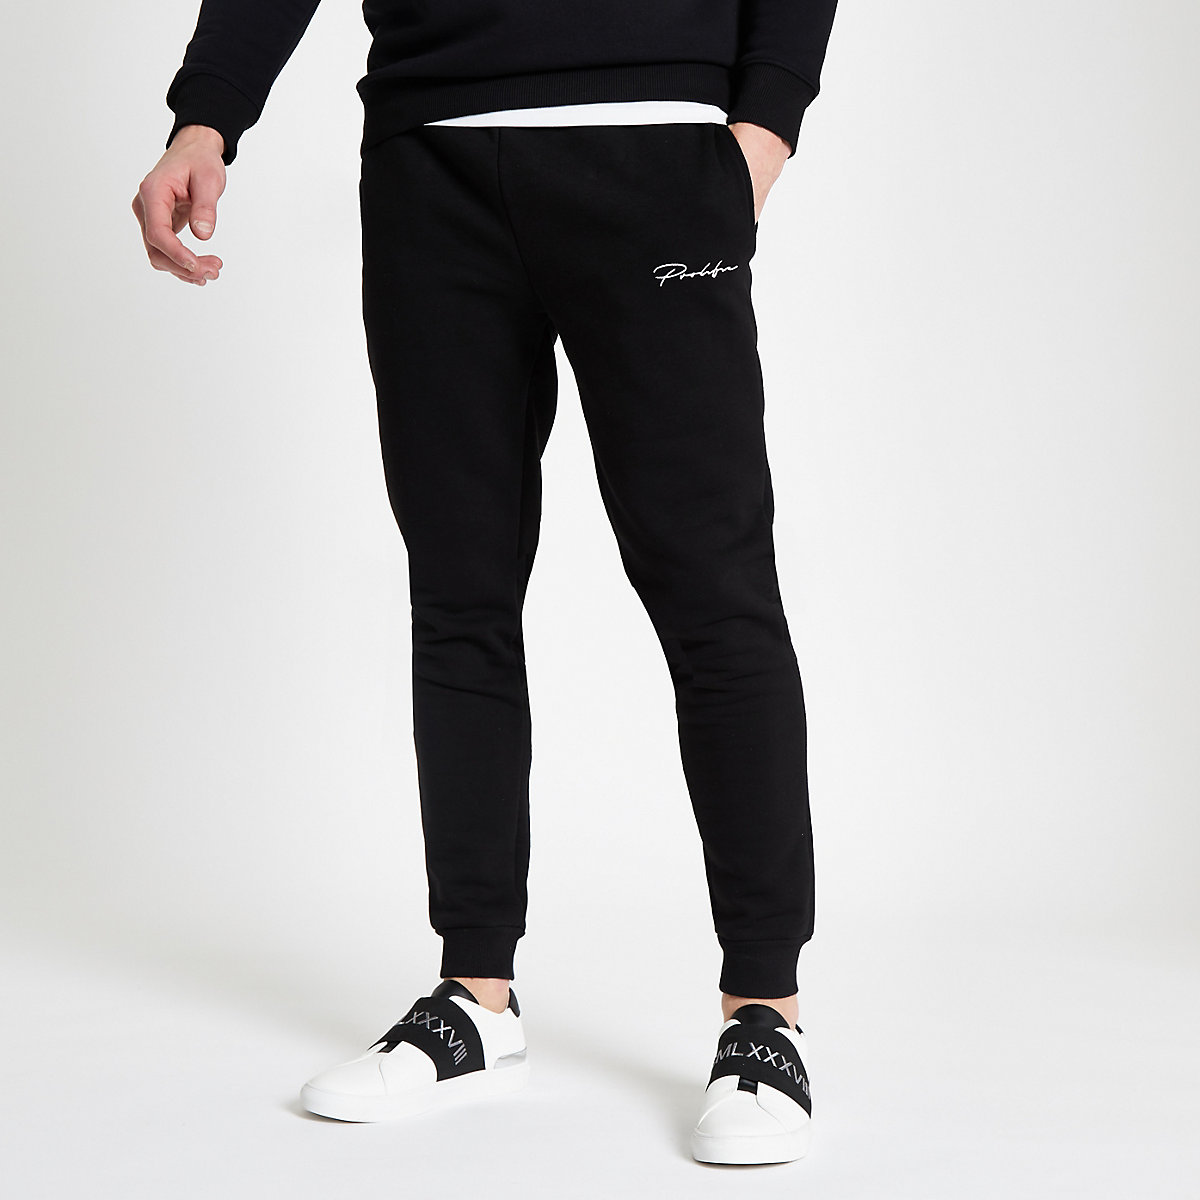 Black 'Prolific' slim fit joggers